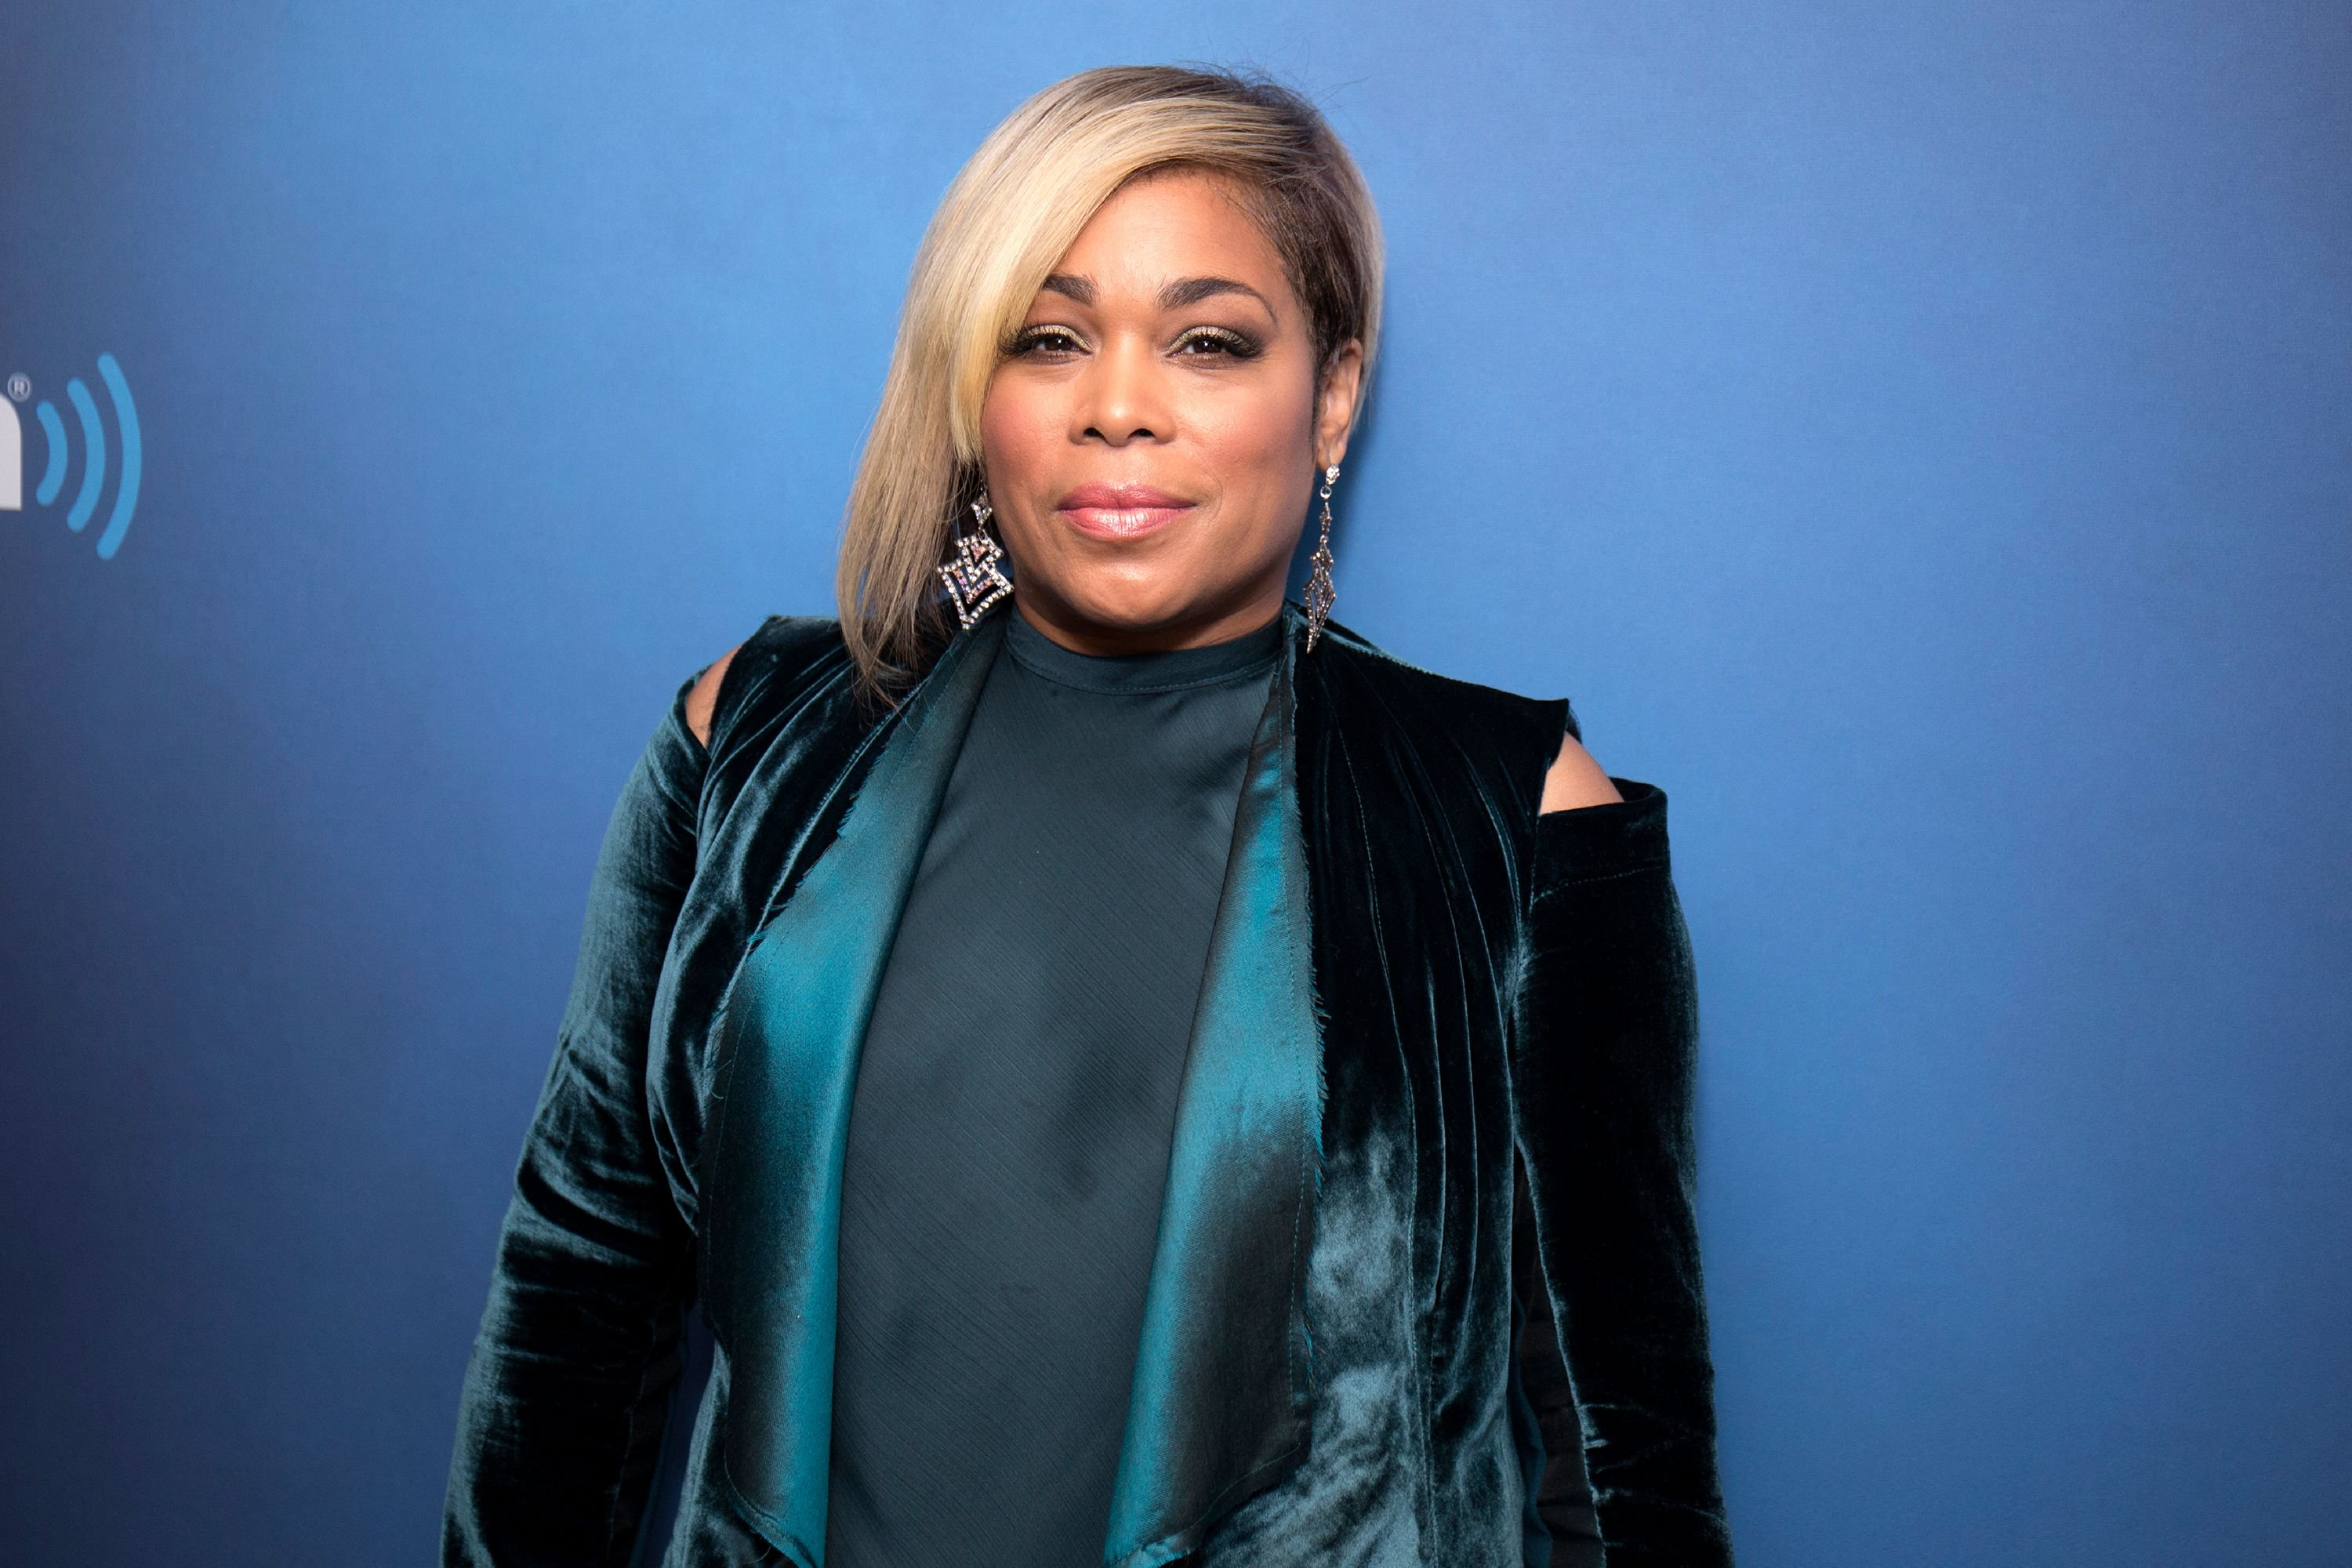 Tionne 'T-Boz' Watkins at SiriusXM Studios on September 12, 2017   Photo: Getty Images